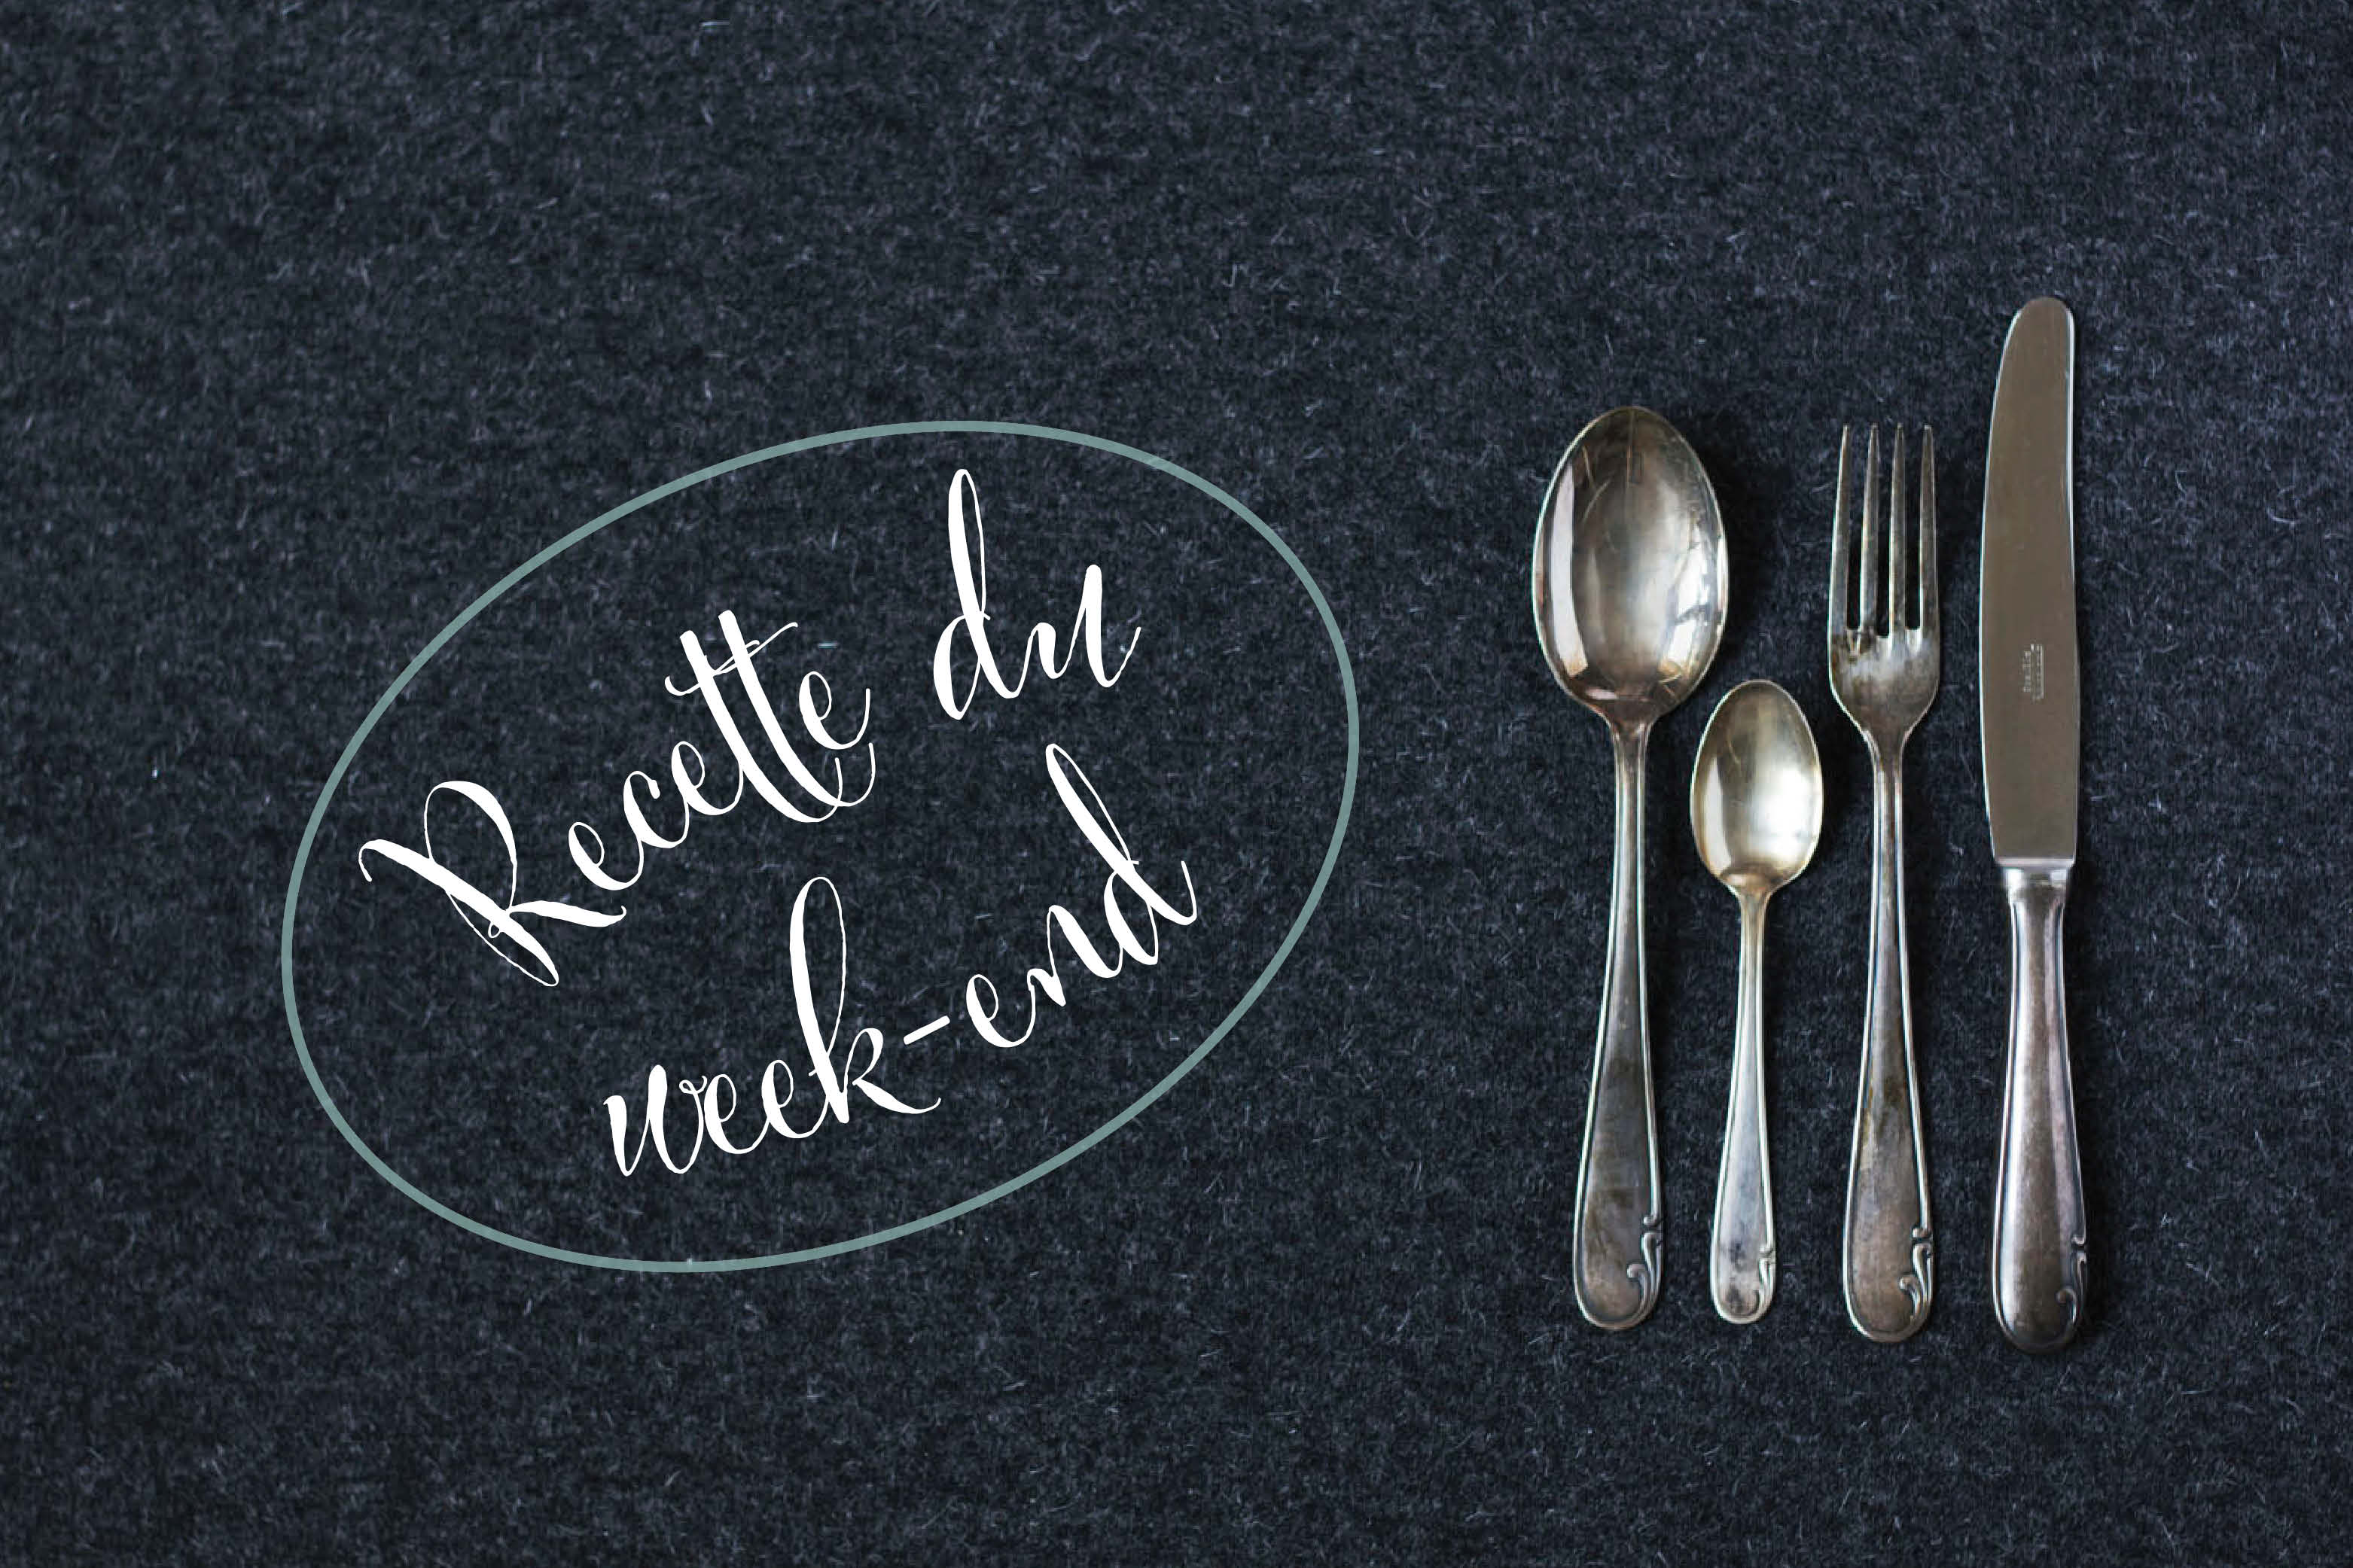 GenussSucht_Recette-du-week-end-header24